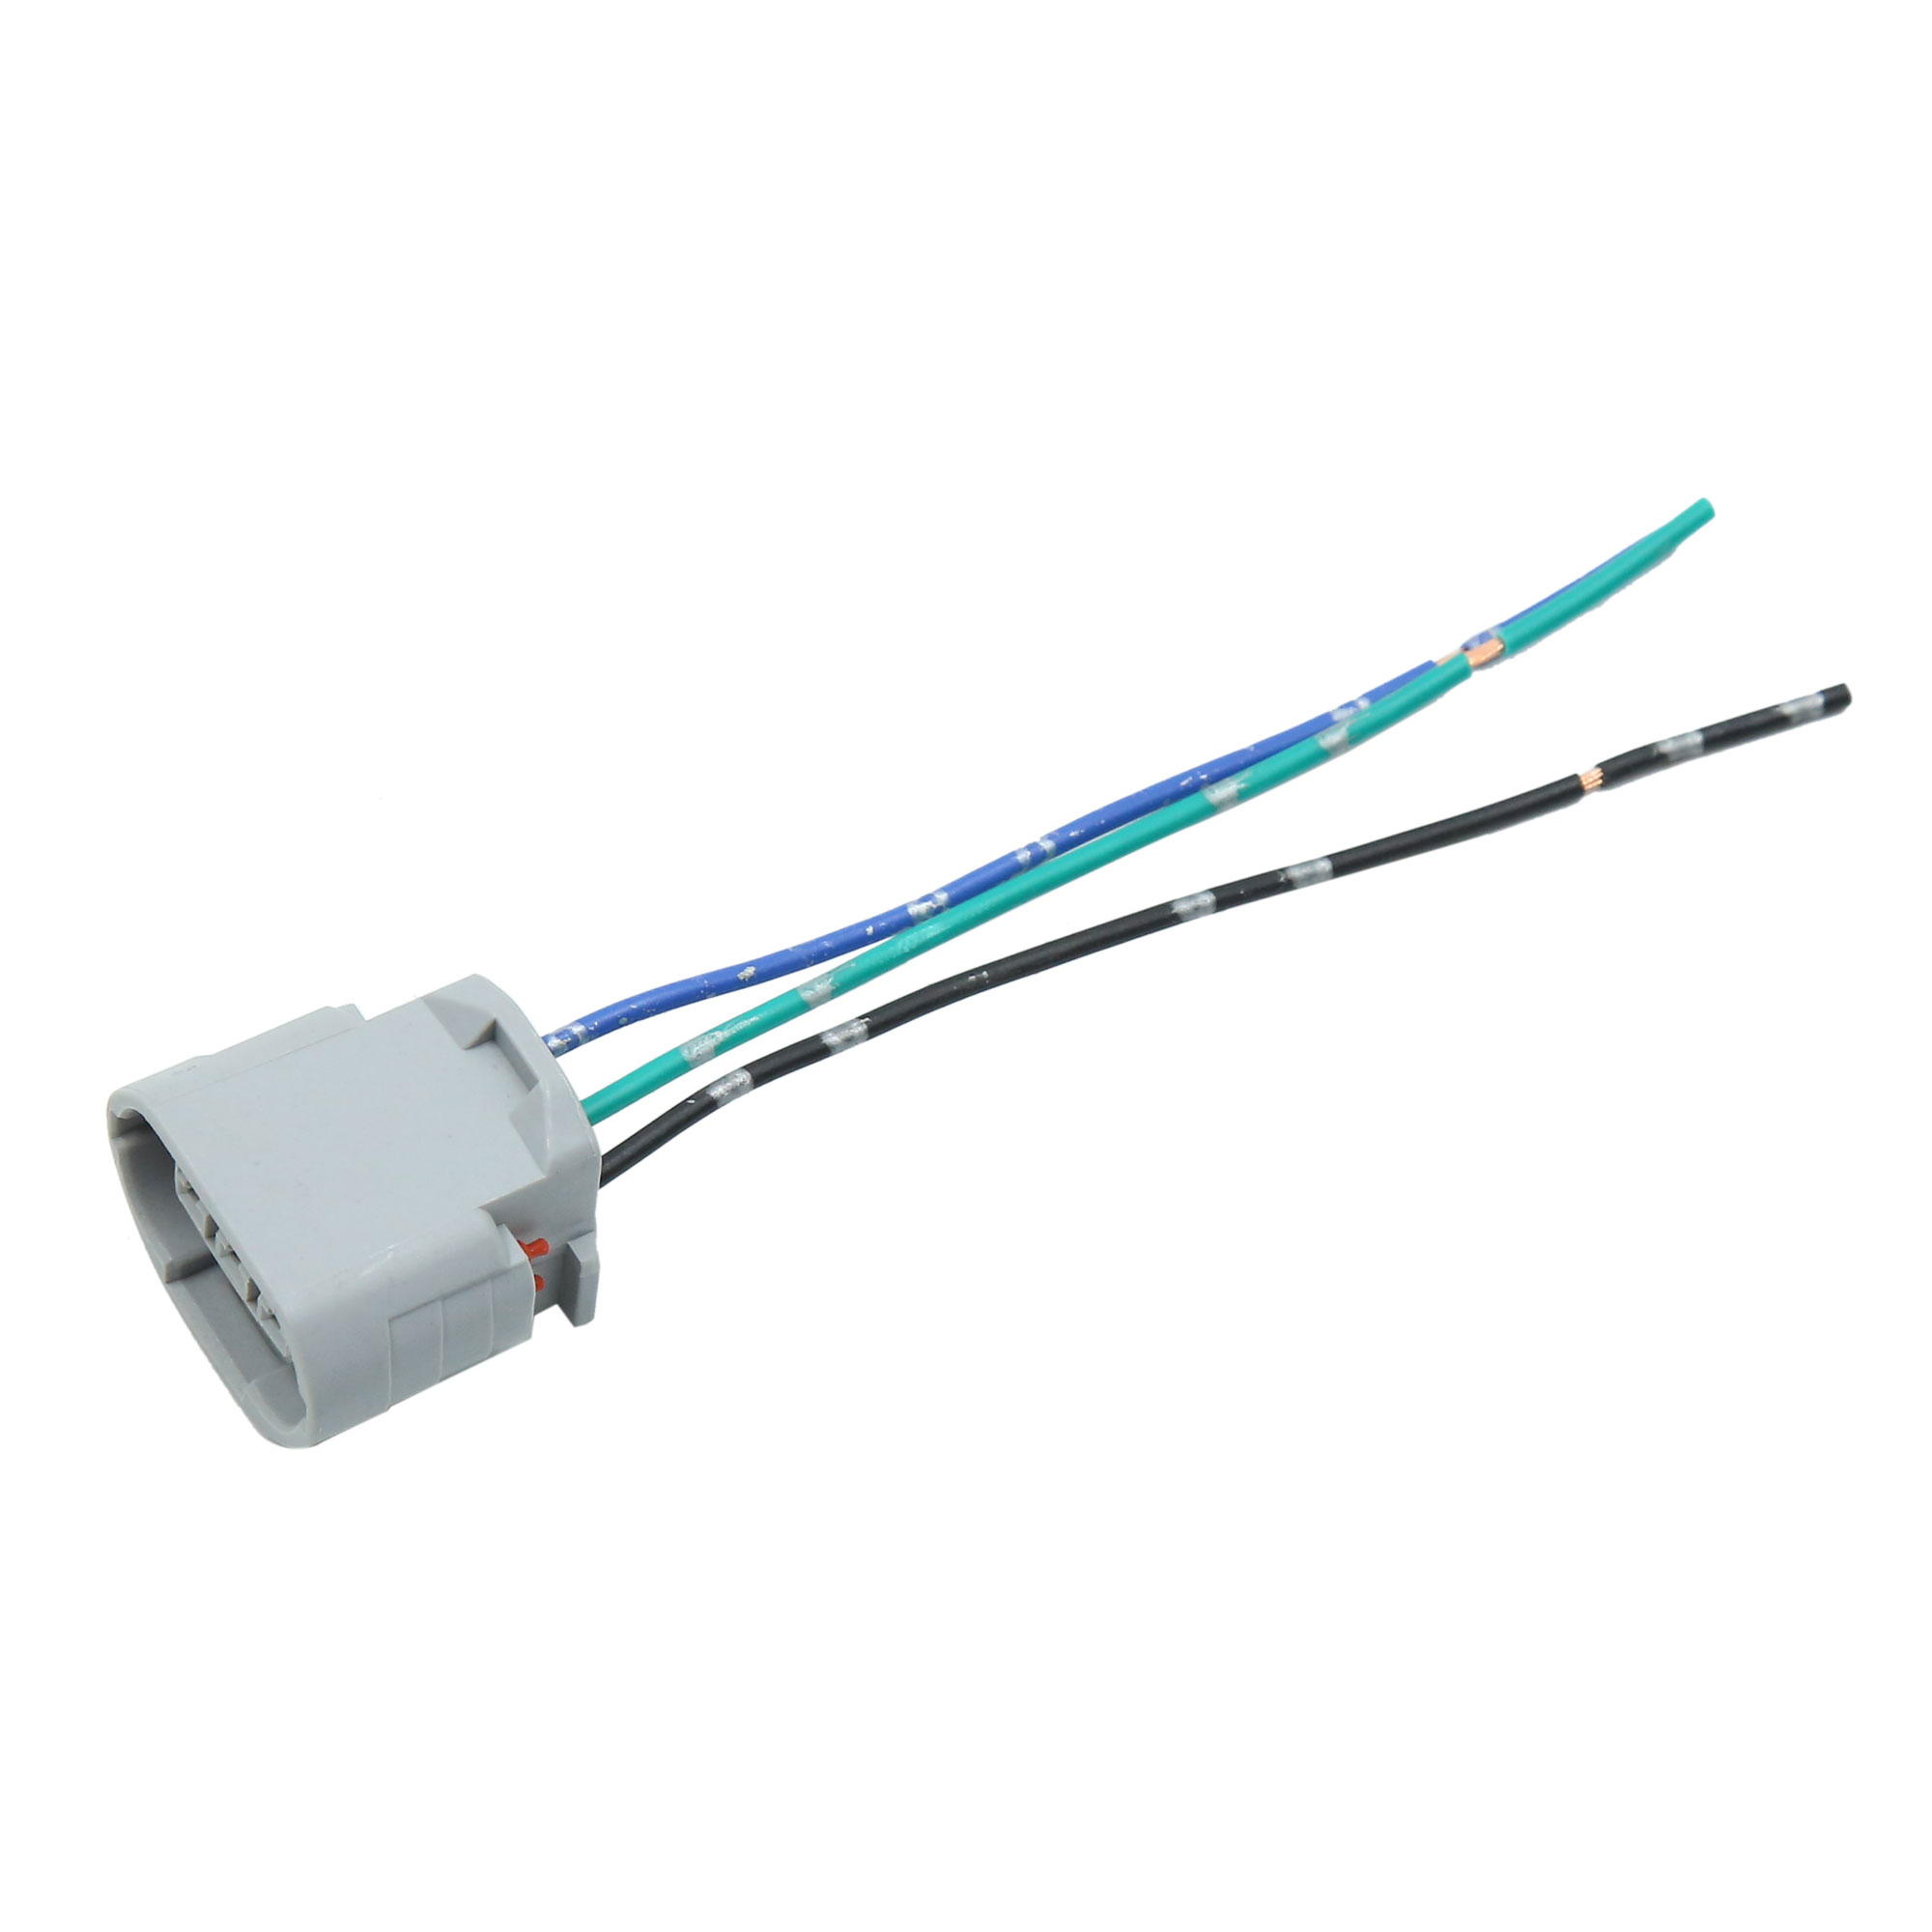 hight resolution of gray dc 12v universal ignition coil plug wiring harness connector for cars walmart com